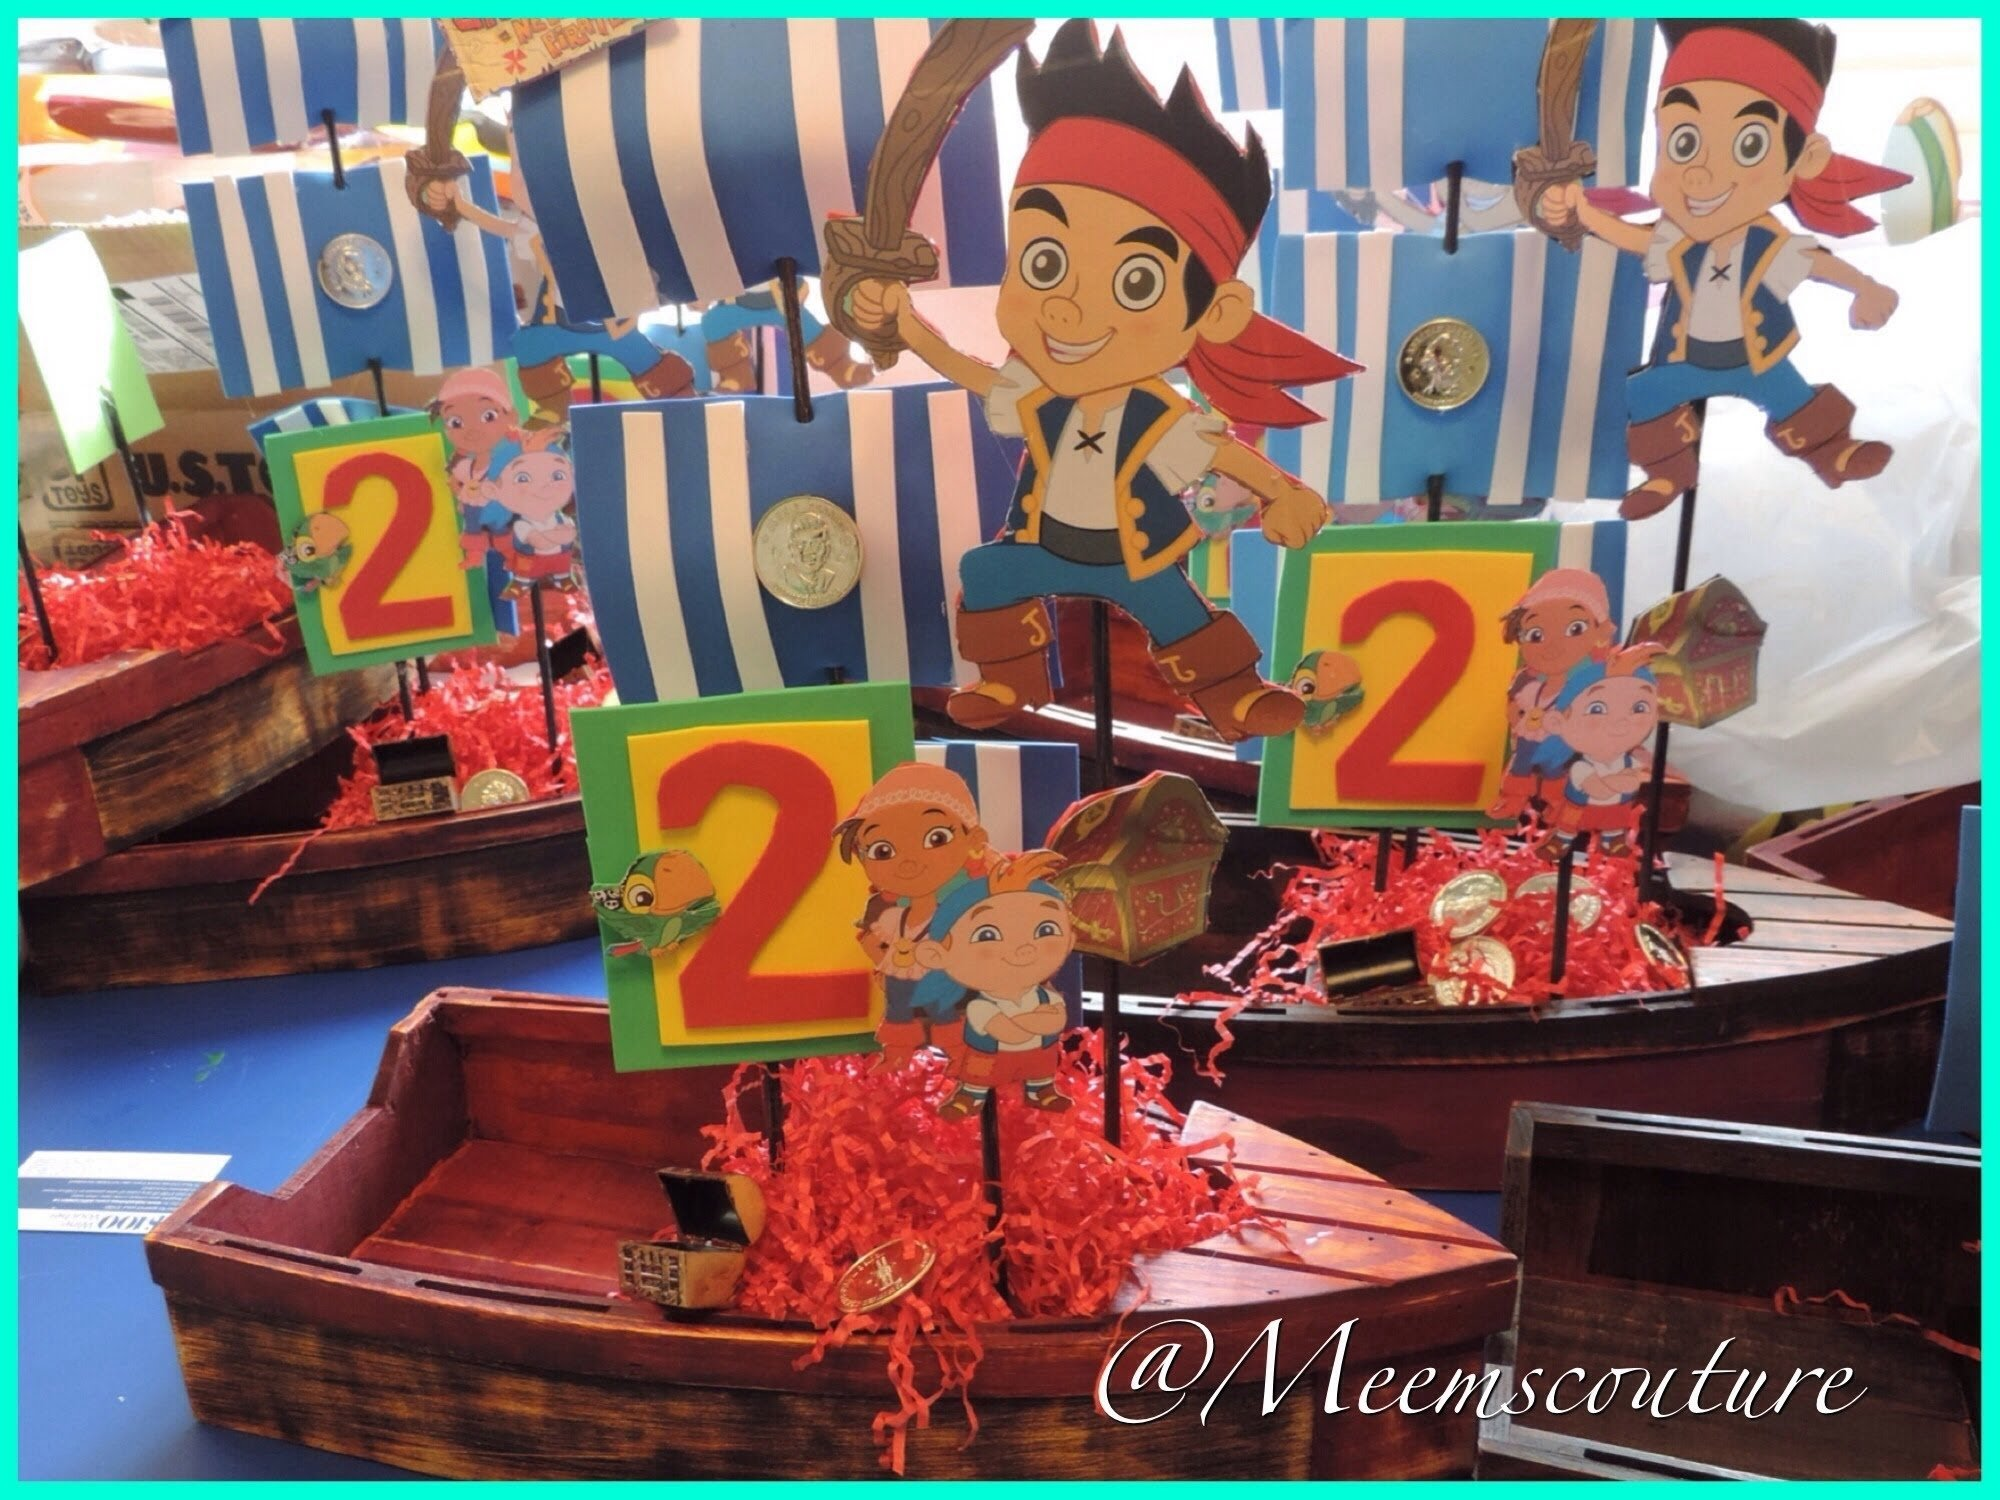 10 Lovable Jake And The Neverland Pirates Decoration Ideas diy jake and the neverland pirates party center pieces youtube 10 2020